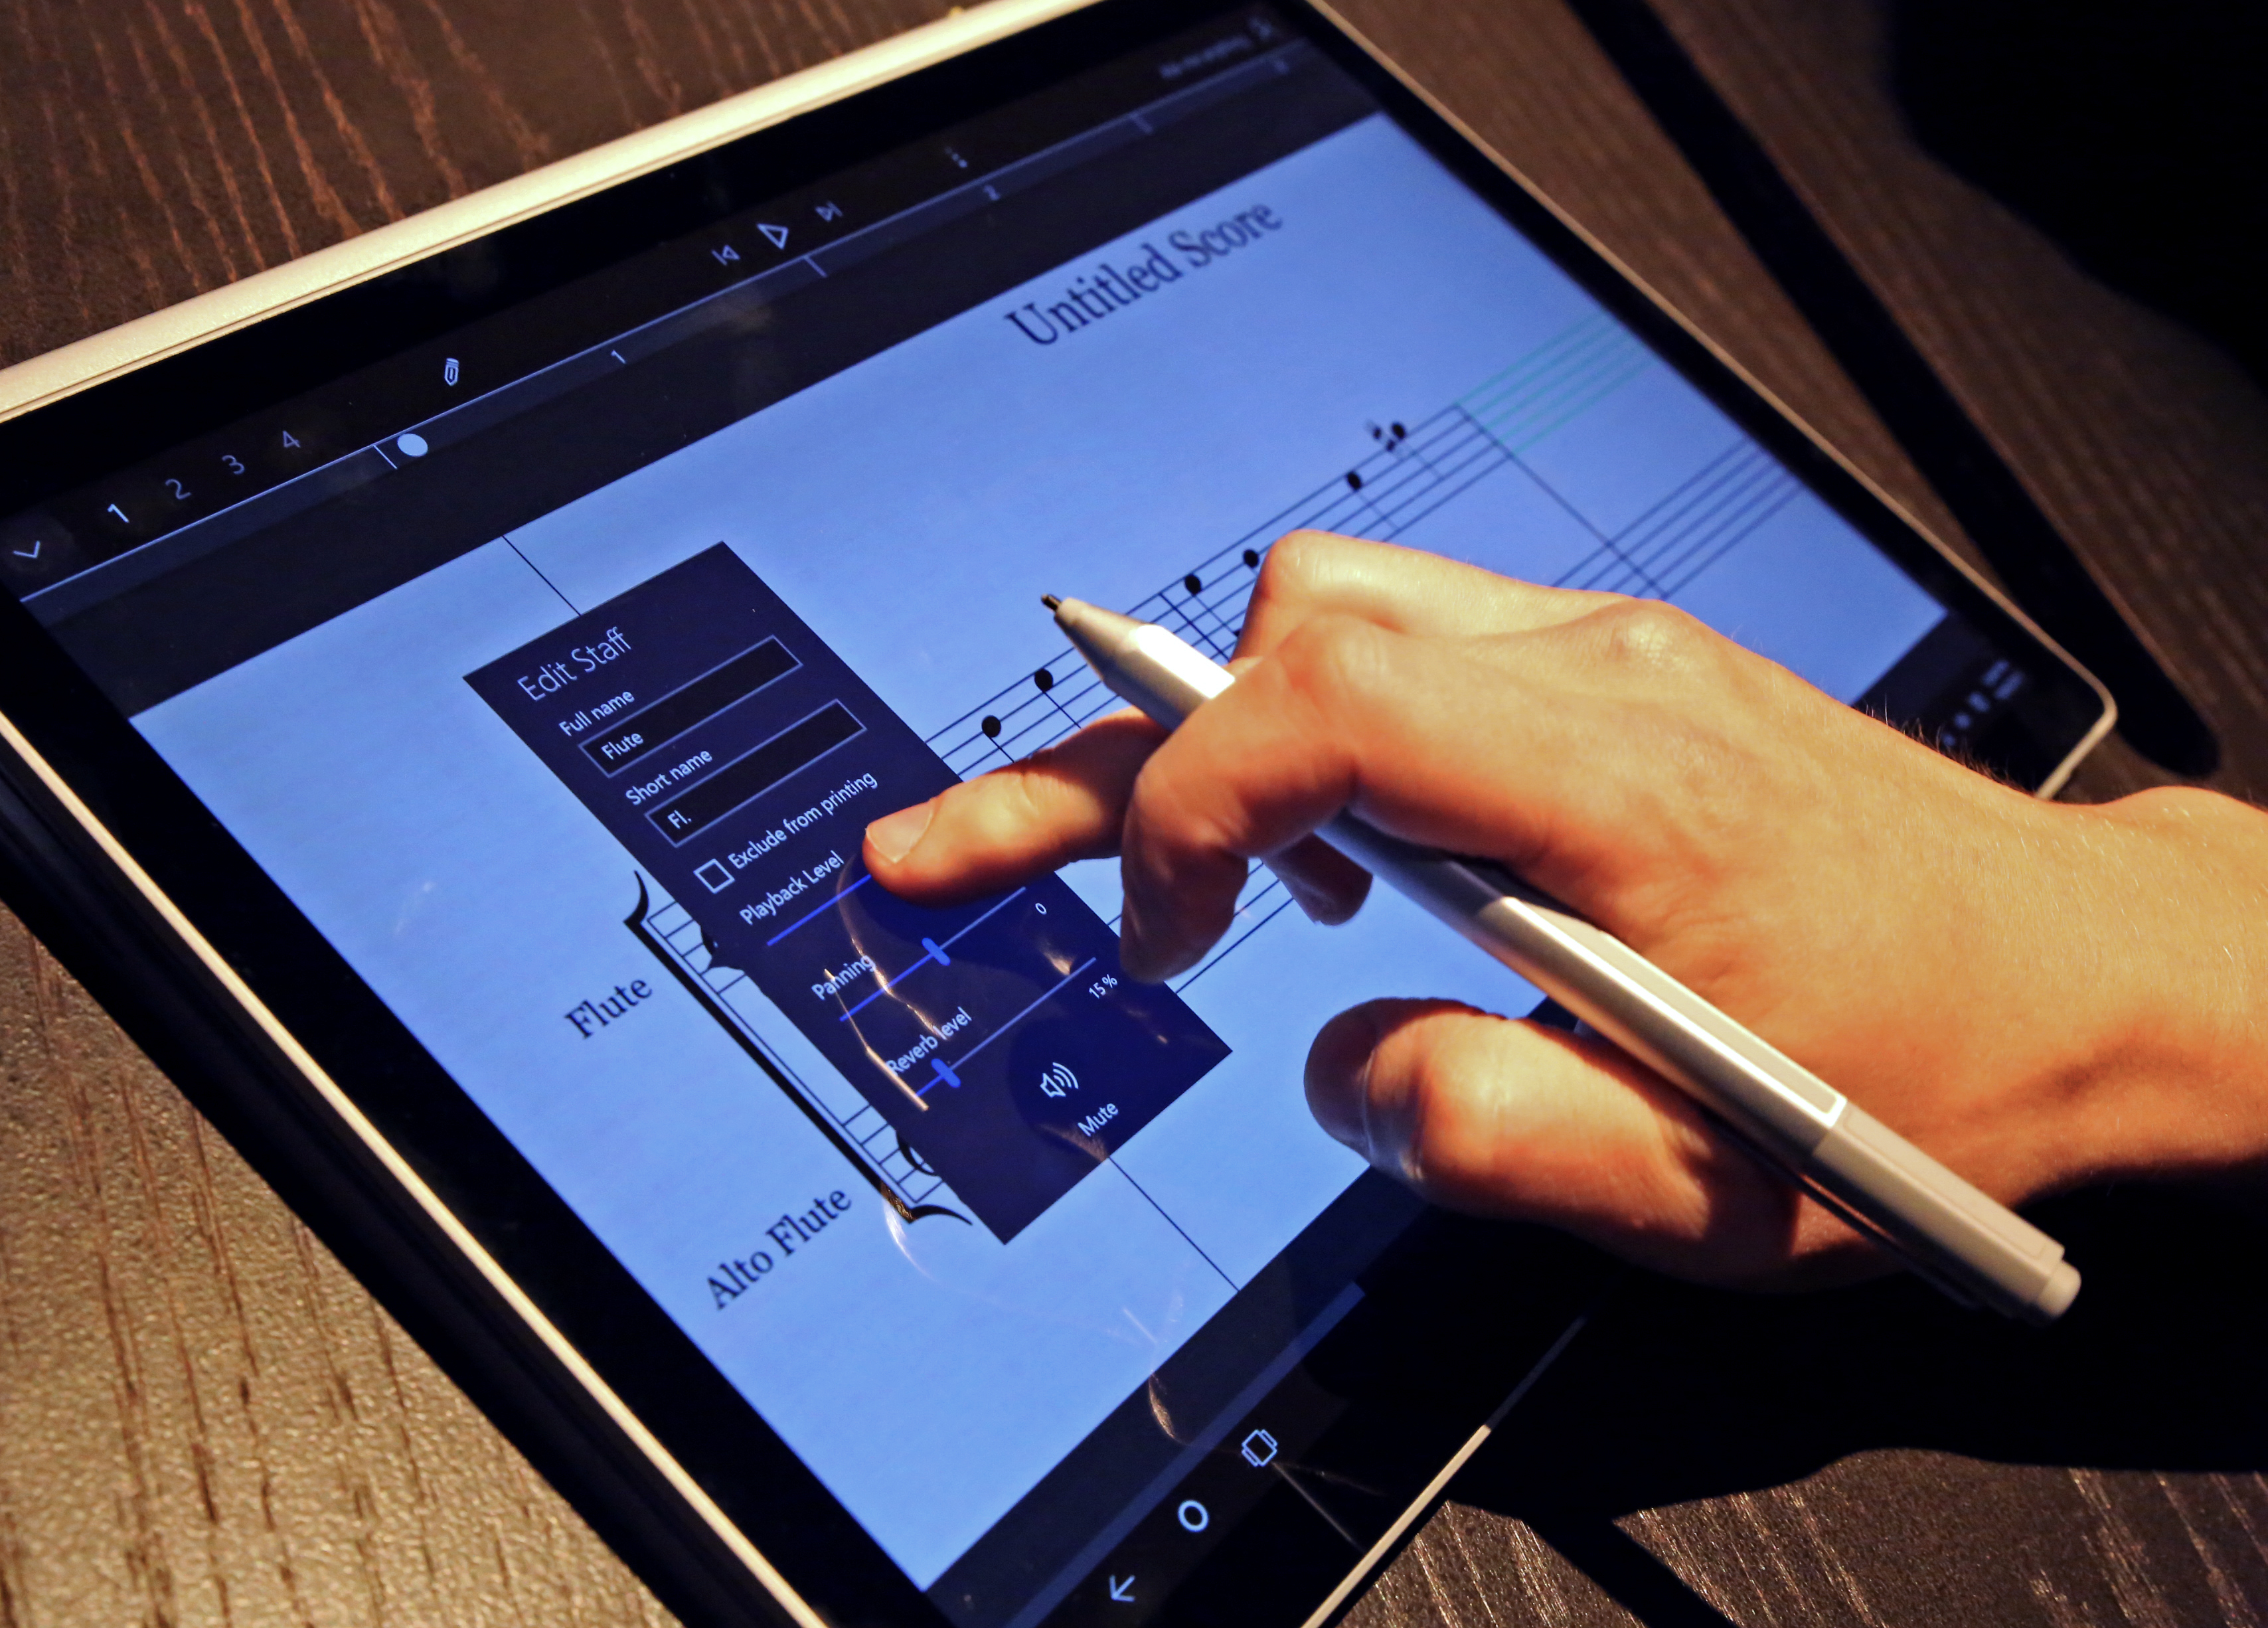 Microsoft Surface Book In Use 2